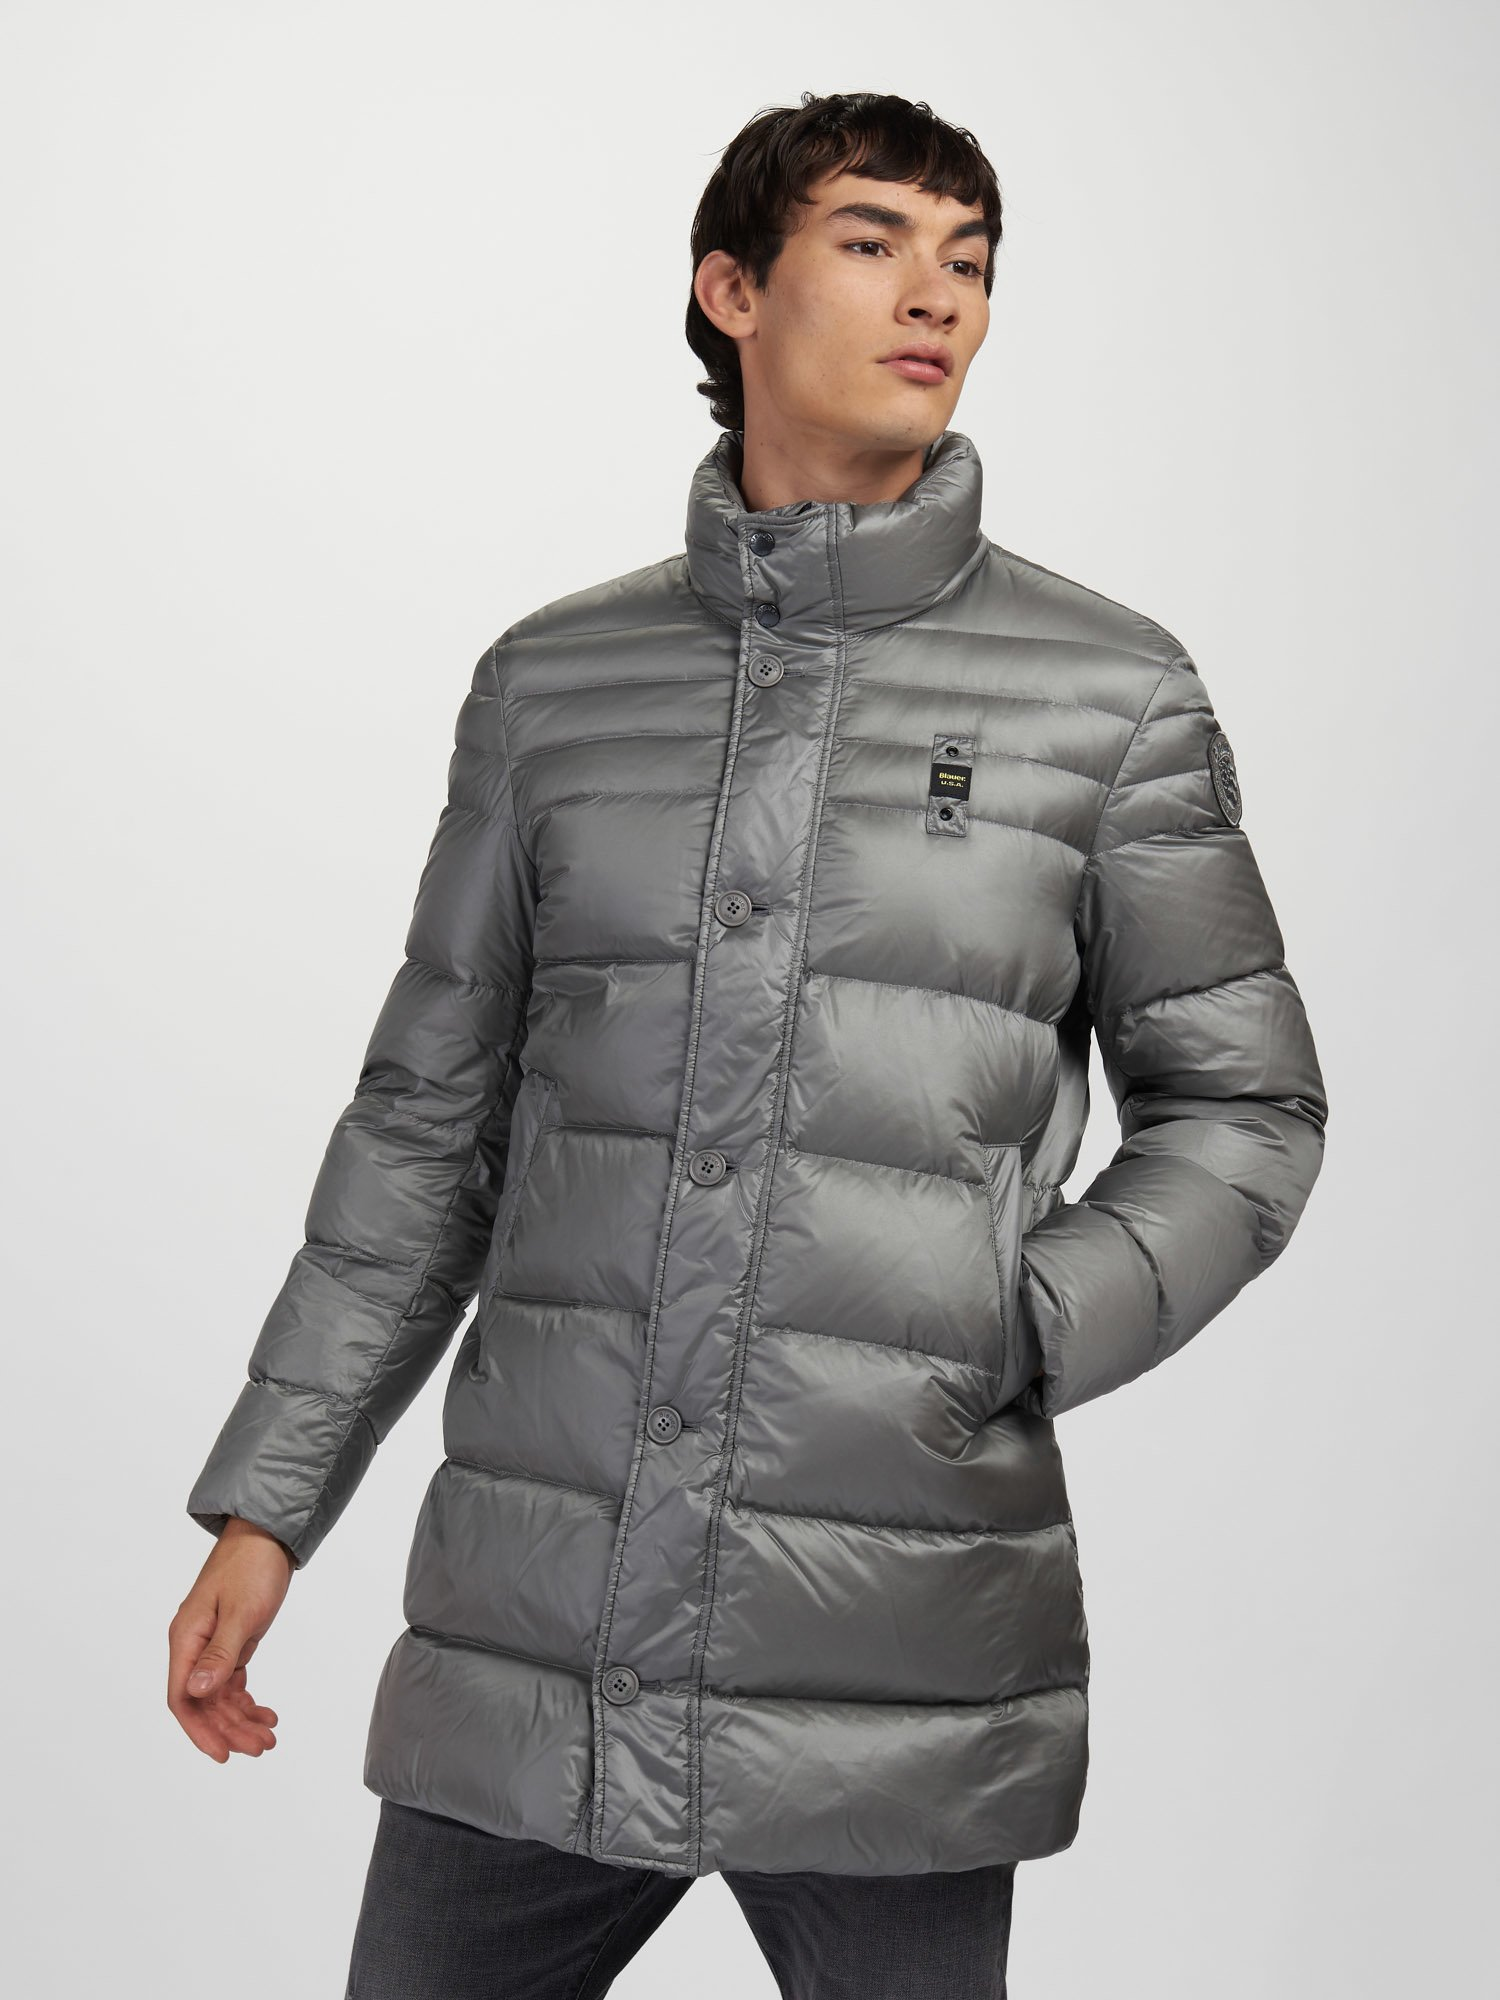 Blauer - CRAIG SHINY LONG DOWN JACKET - Grey Pigeon - Blauer